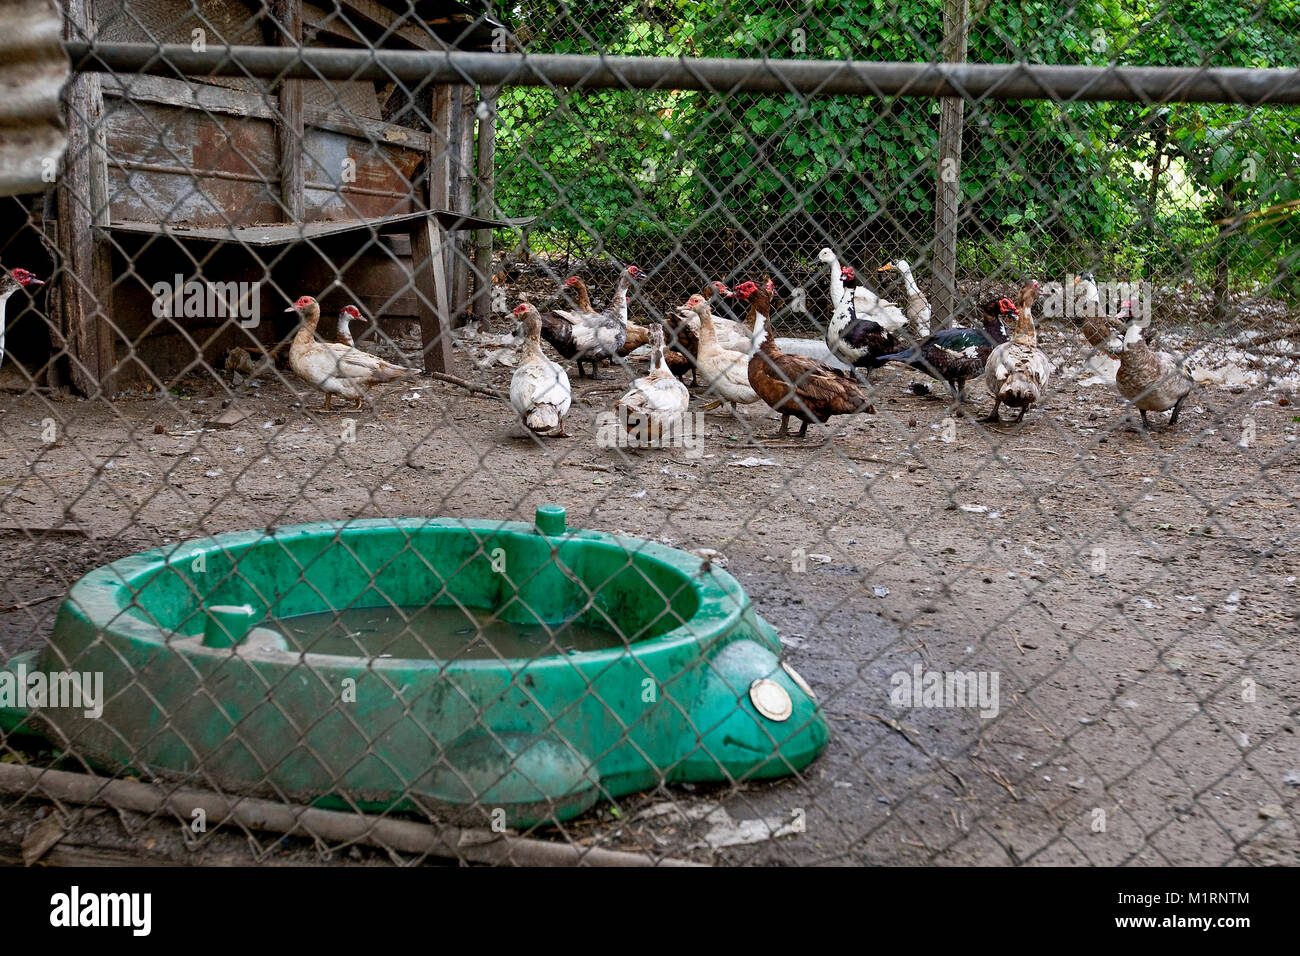 Muscovy duck (Cairina moschata), in a dirt floor, chain-link pen on a subsistence farm, northwest Georgia. The ducks - Stock Image